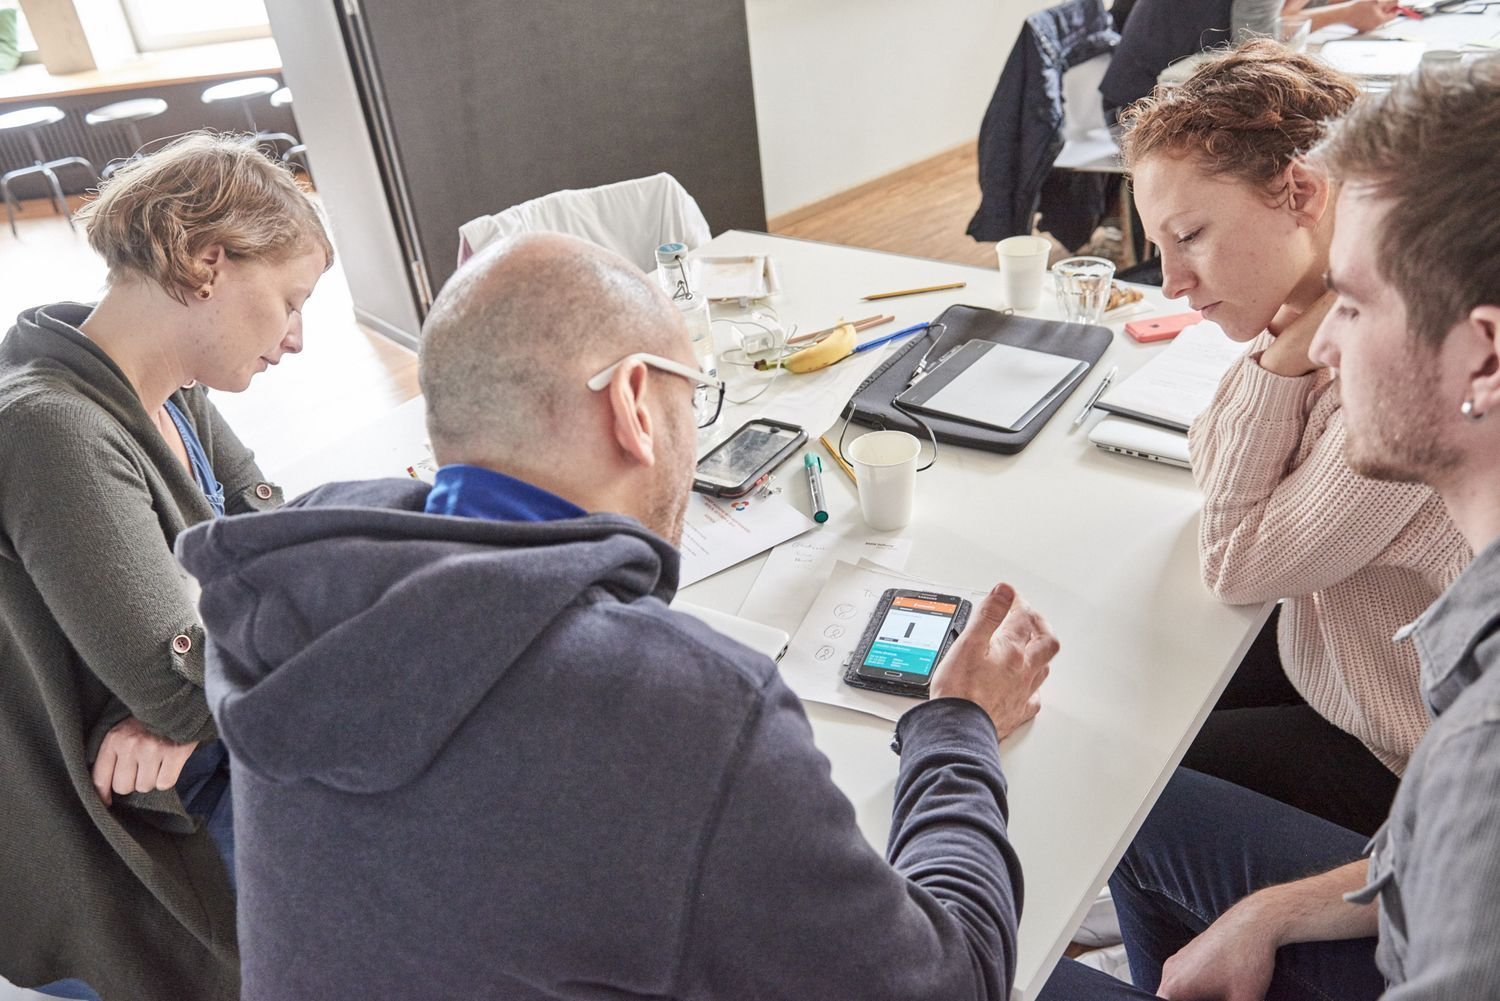 participants testing the Wertewandel app on a mobile phone